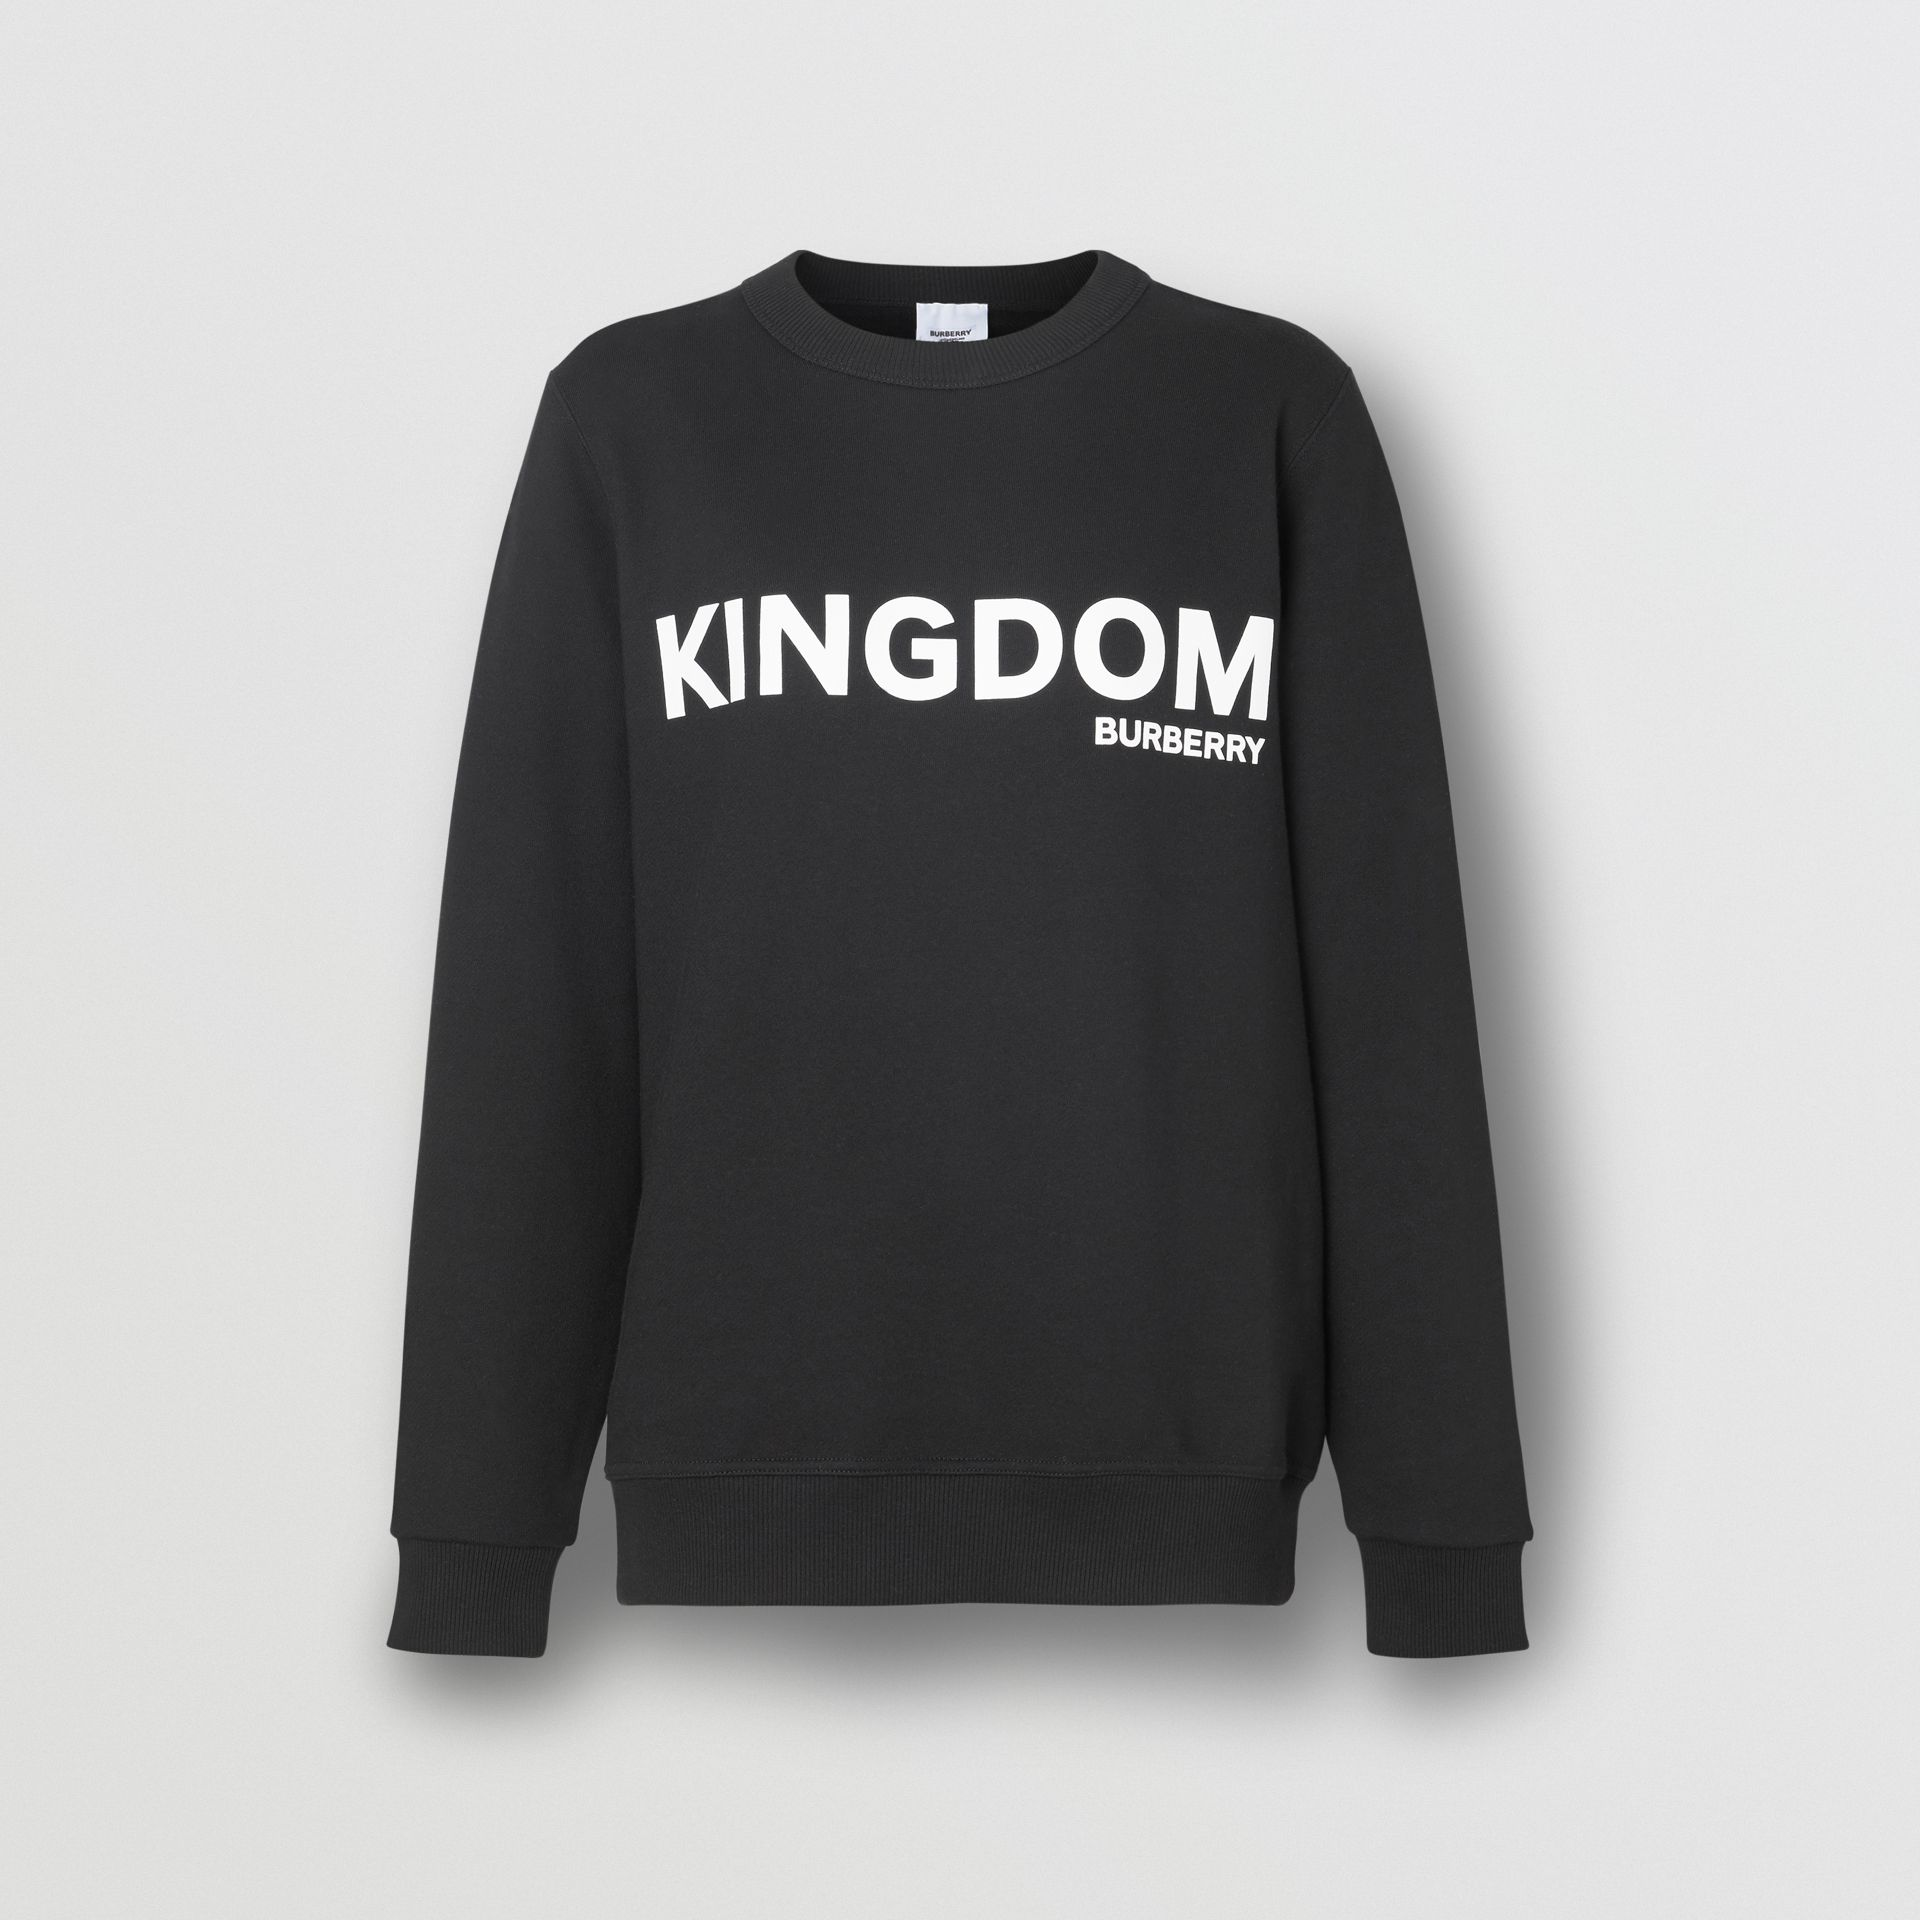 Kingdom Print Cotton Sweatshirt in Black - Women | Burberry Hong Kong - gallery image 3